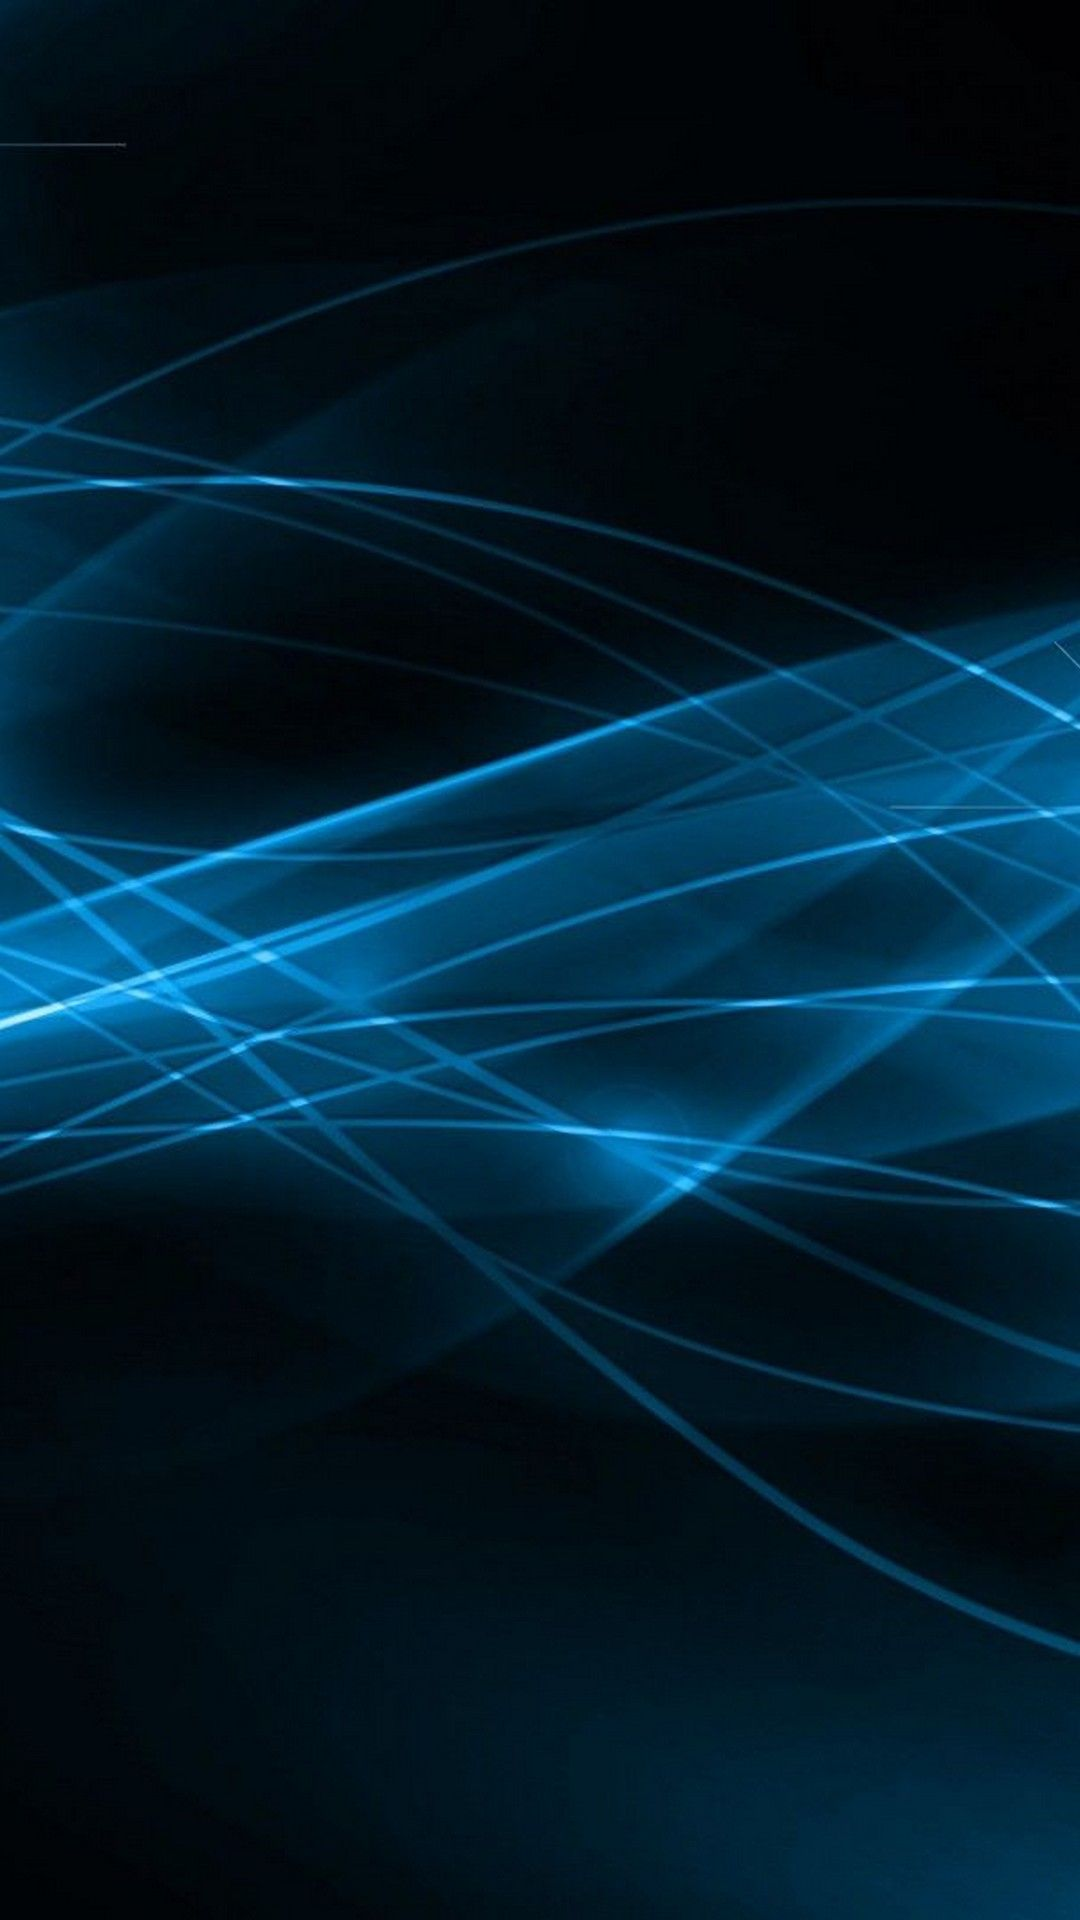 Black and Blue Phone Wallpapers - Top Free Black and Blue ...